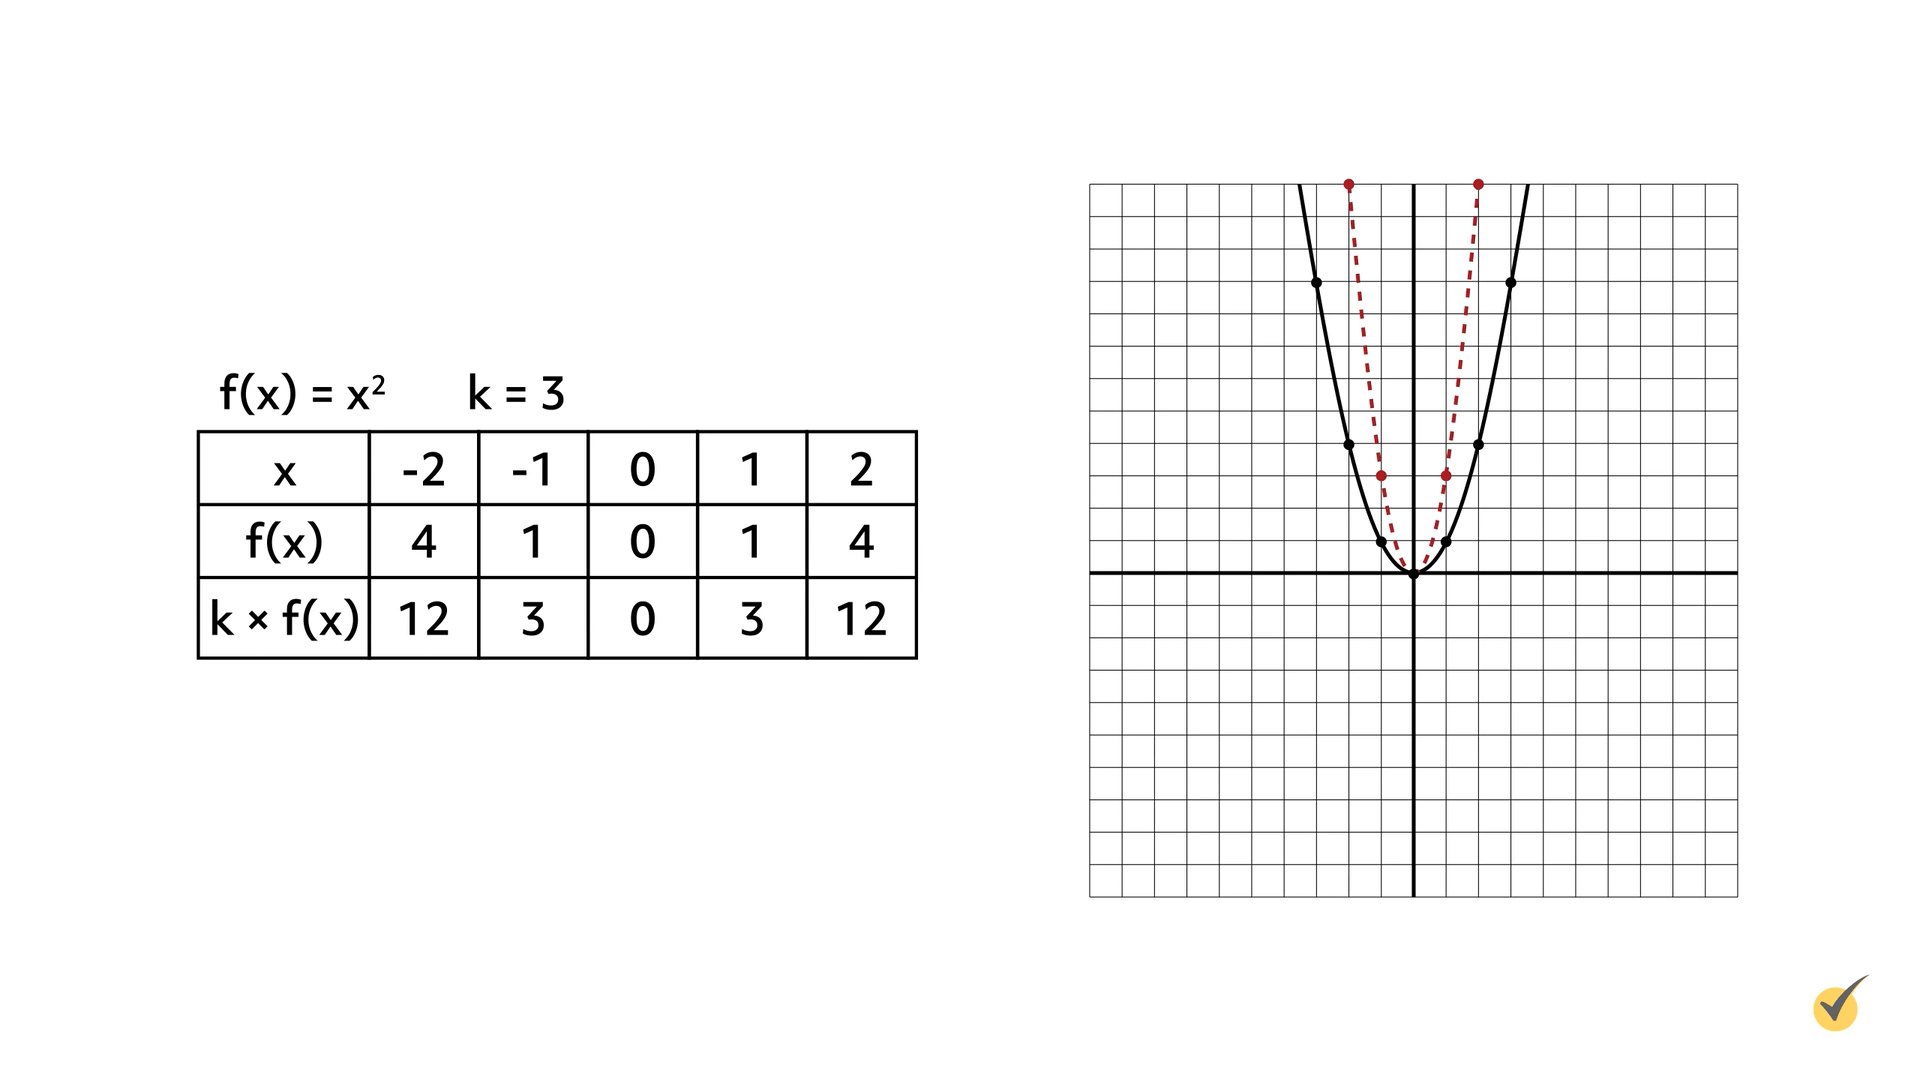 Image of f(x)=x^2 and K=3 plotted on a graph.